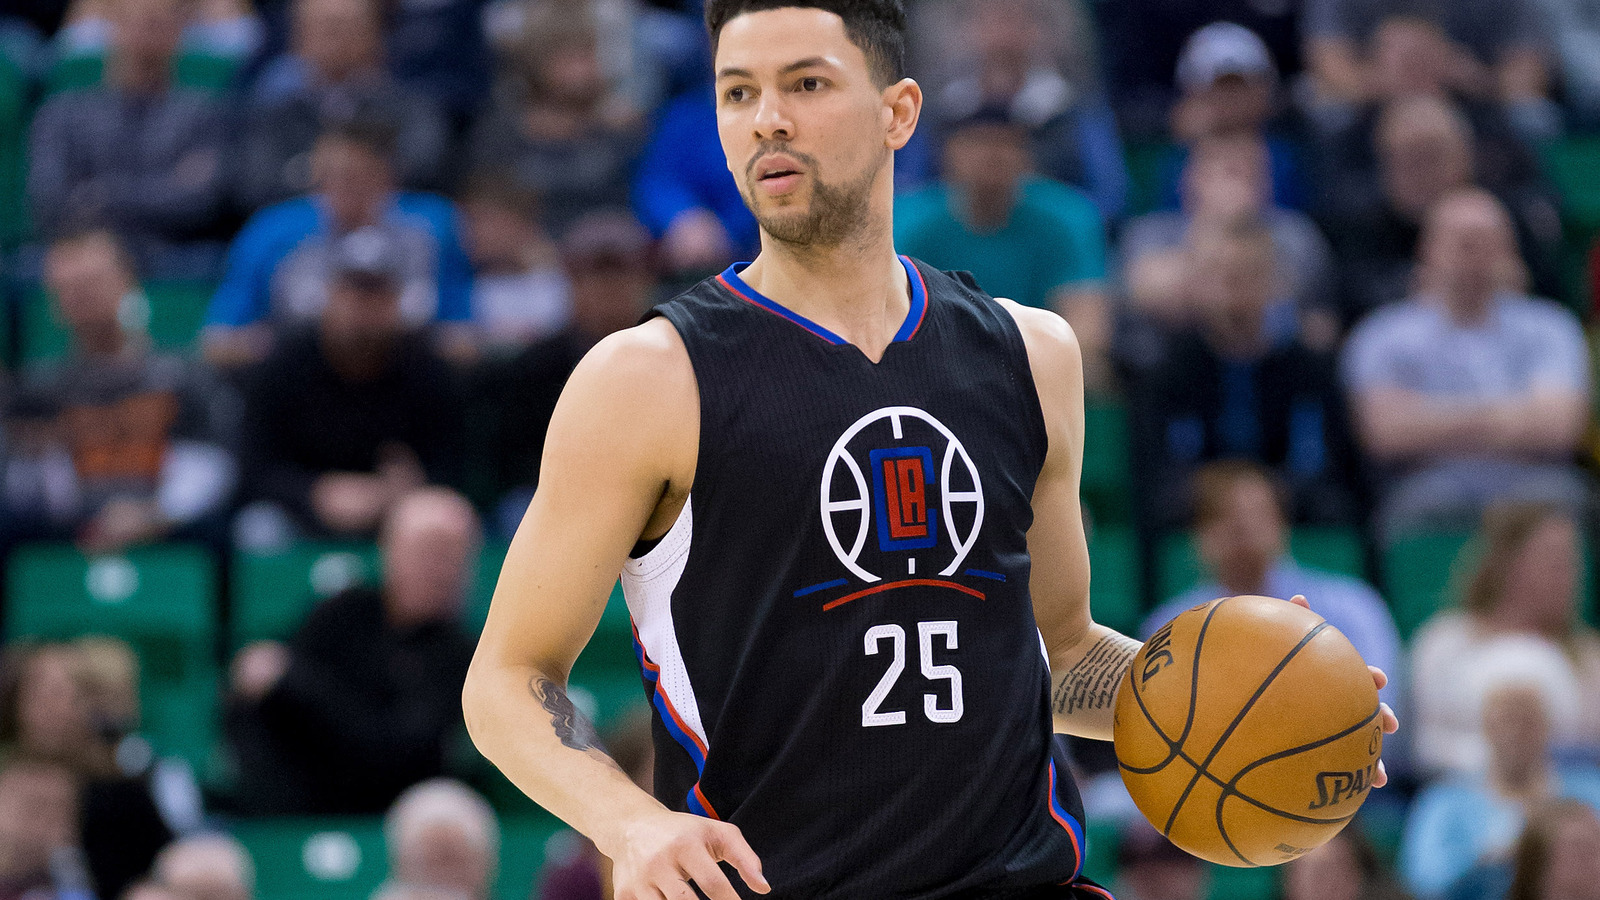 La clippers the impact of blake griffins surgery on the team foxsports com - La Clippers Guard Austin Rivers Hopes The Team Keeps The Core Together Russ Isabella Usa Today Sports